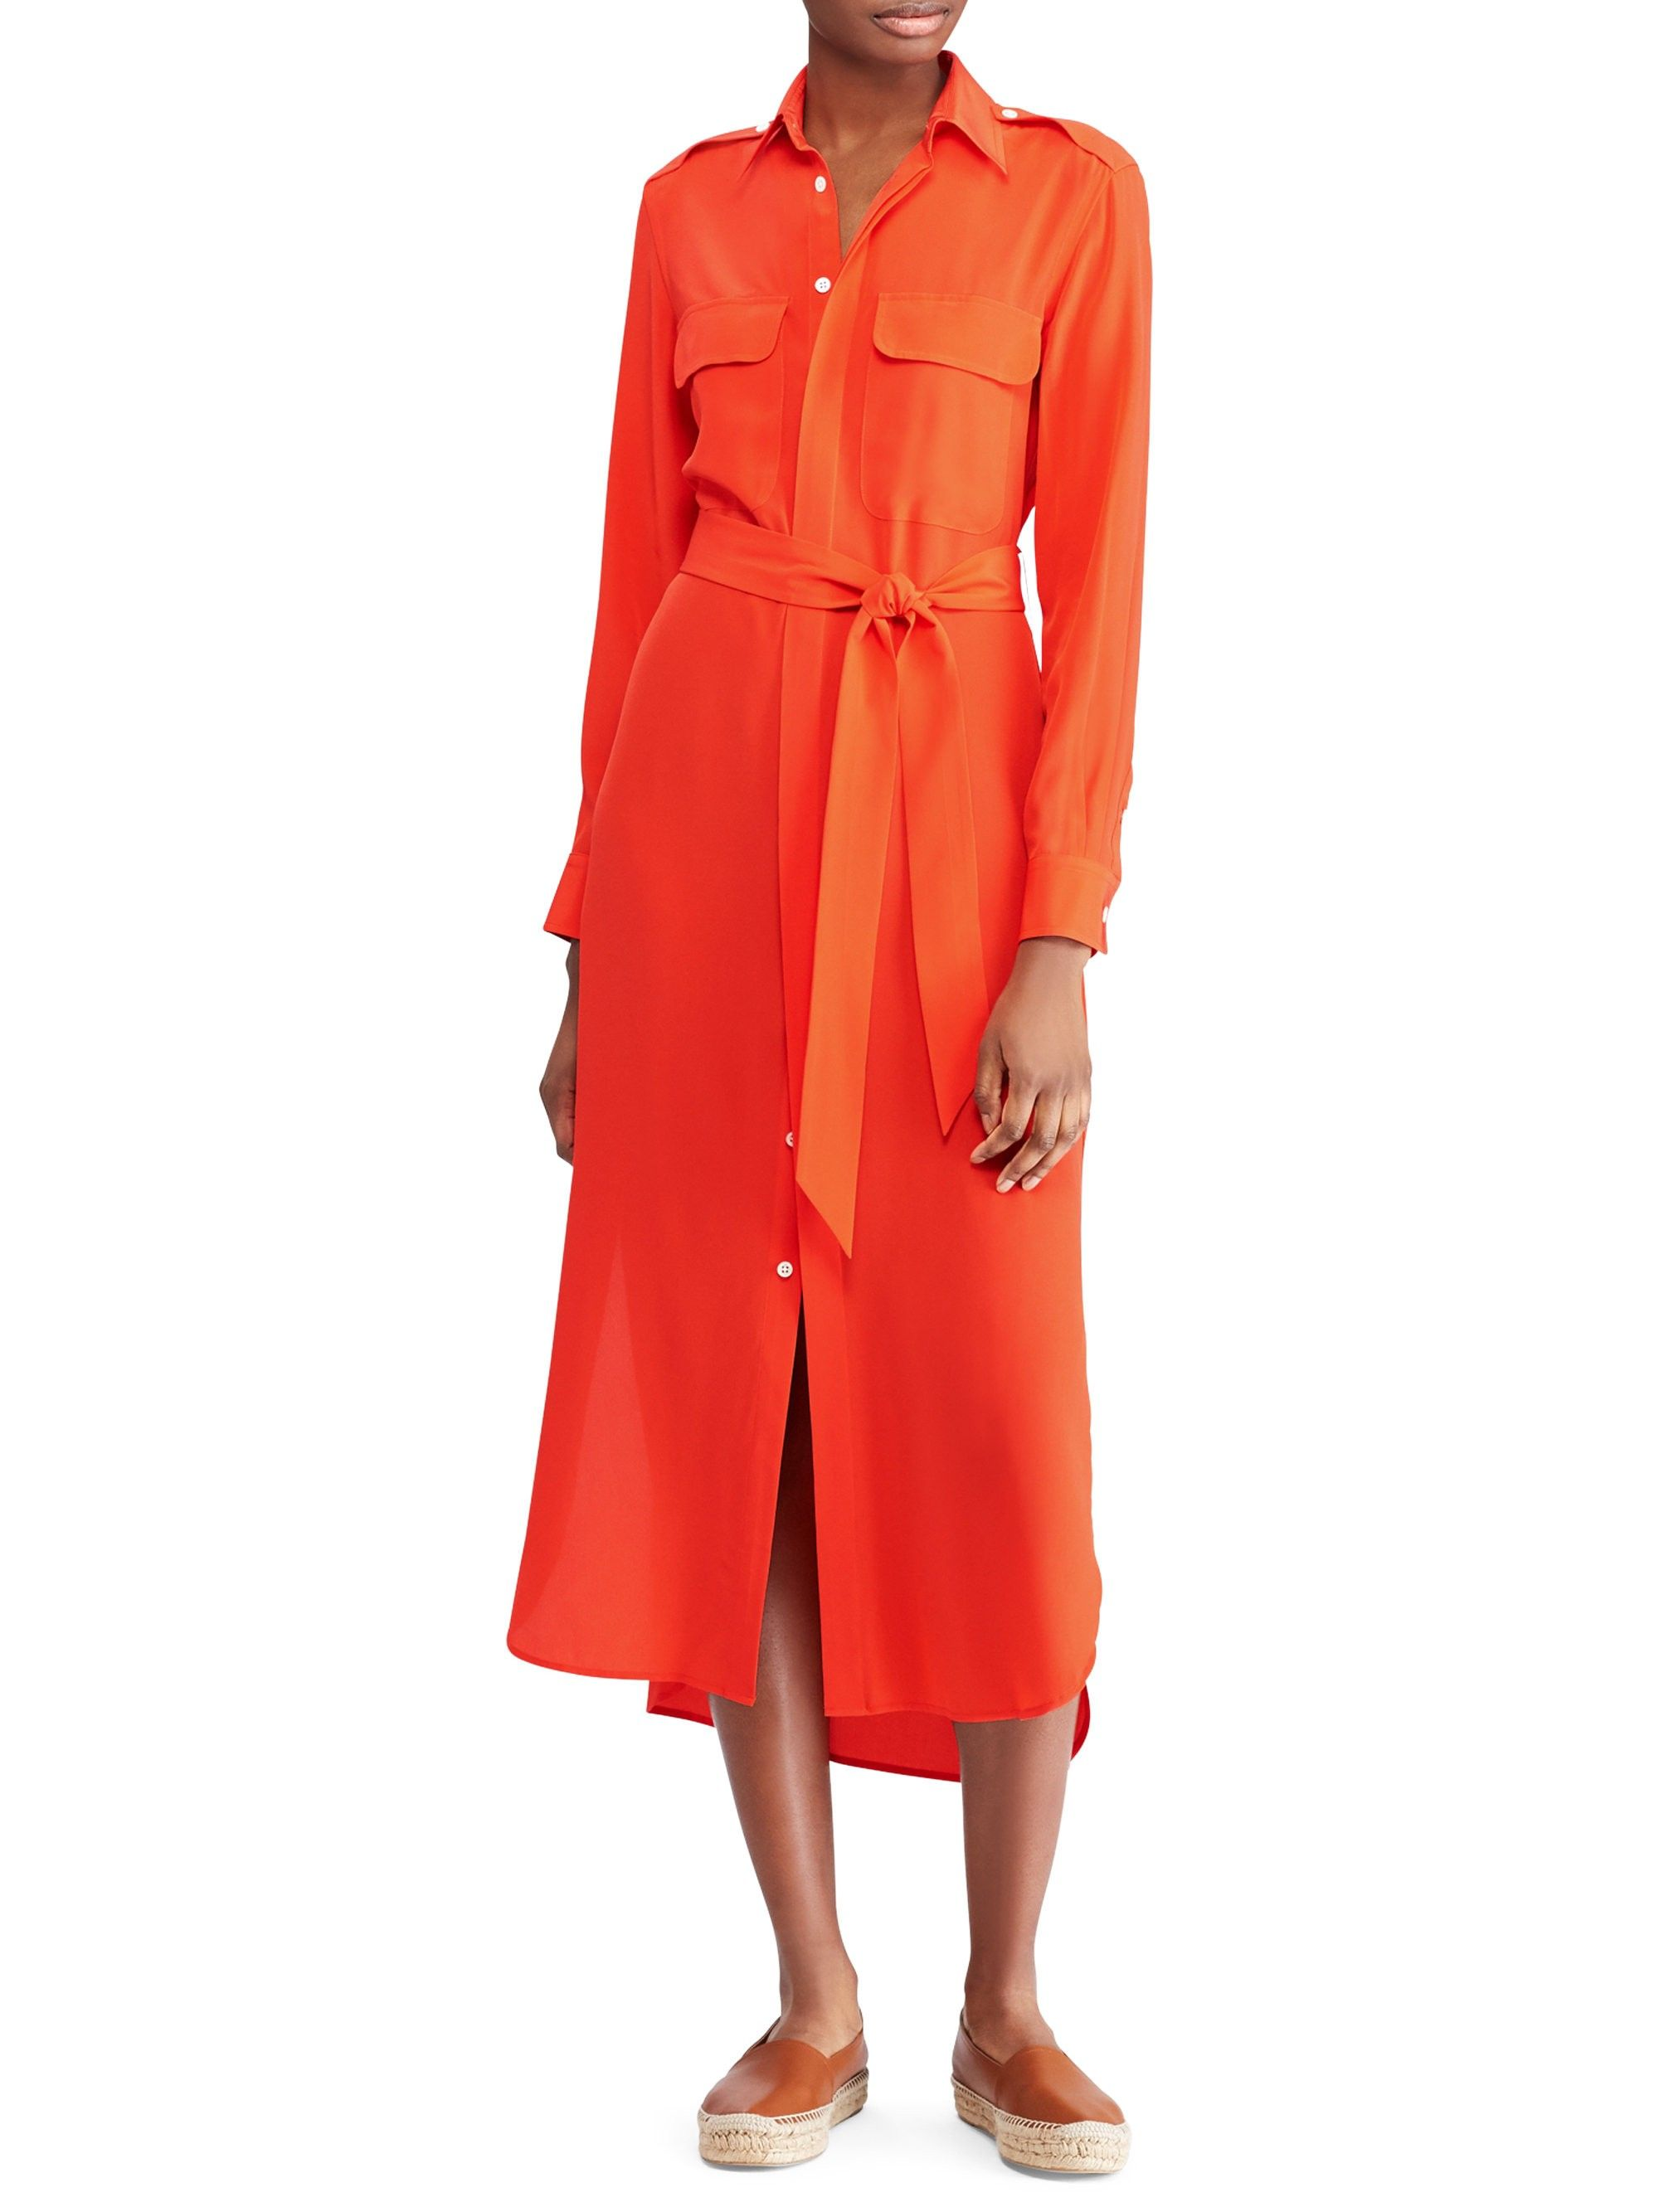 8298c0a17a221 Ralph Lauren Belted Silk Shirt Dress - Red 10 | Products in 2019 ...